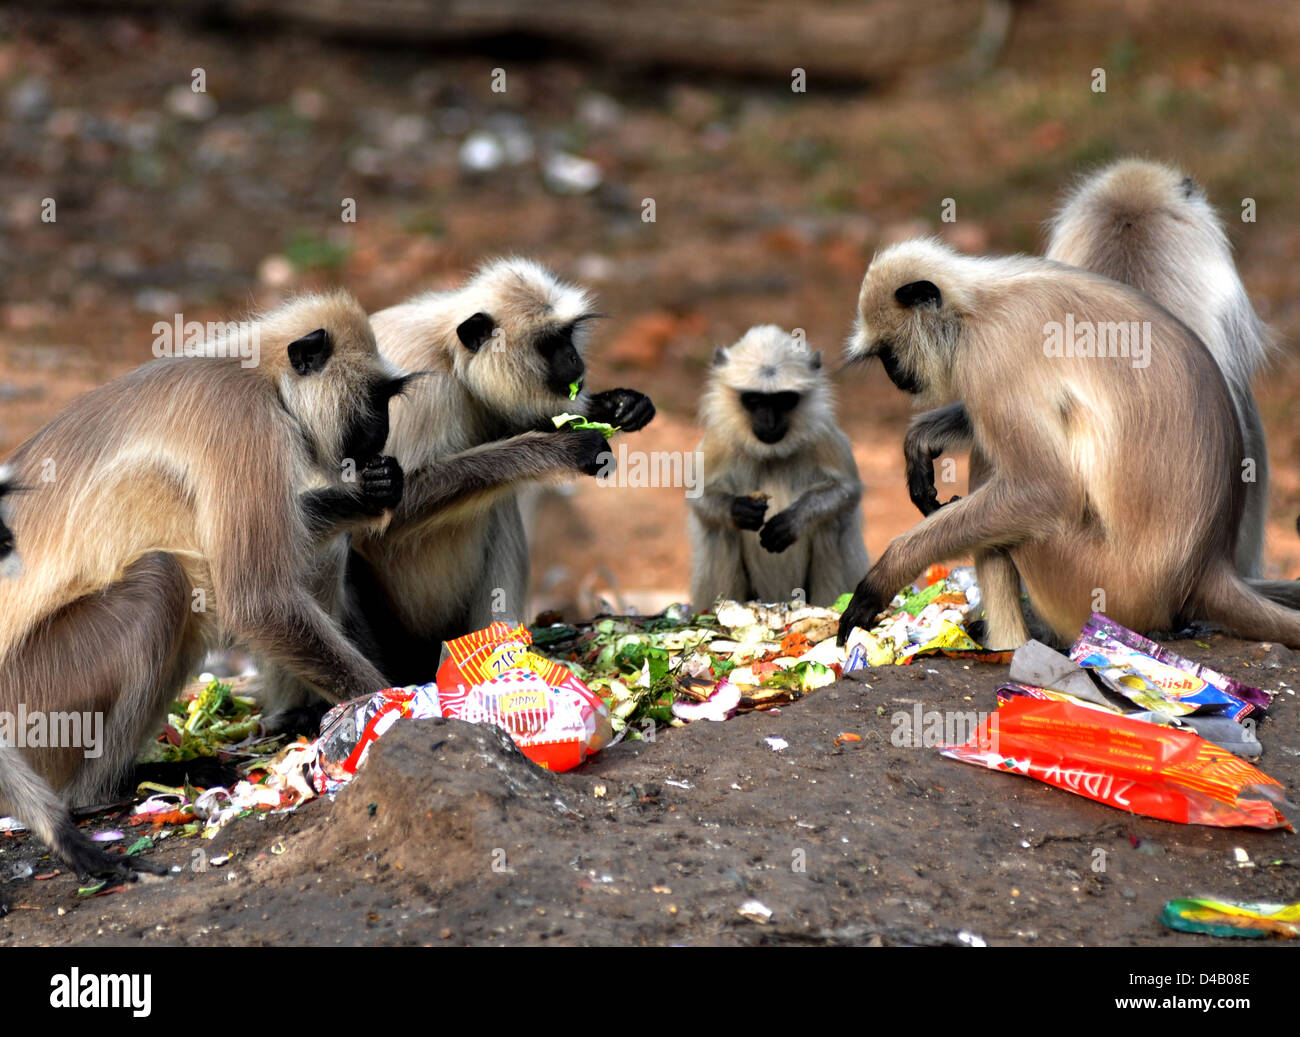 Tufted gray langur (Semnopithecus priam) is an Old World monkey, one of species of langurs, eat leftover by the - Stock Image